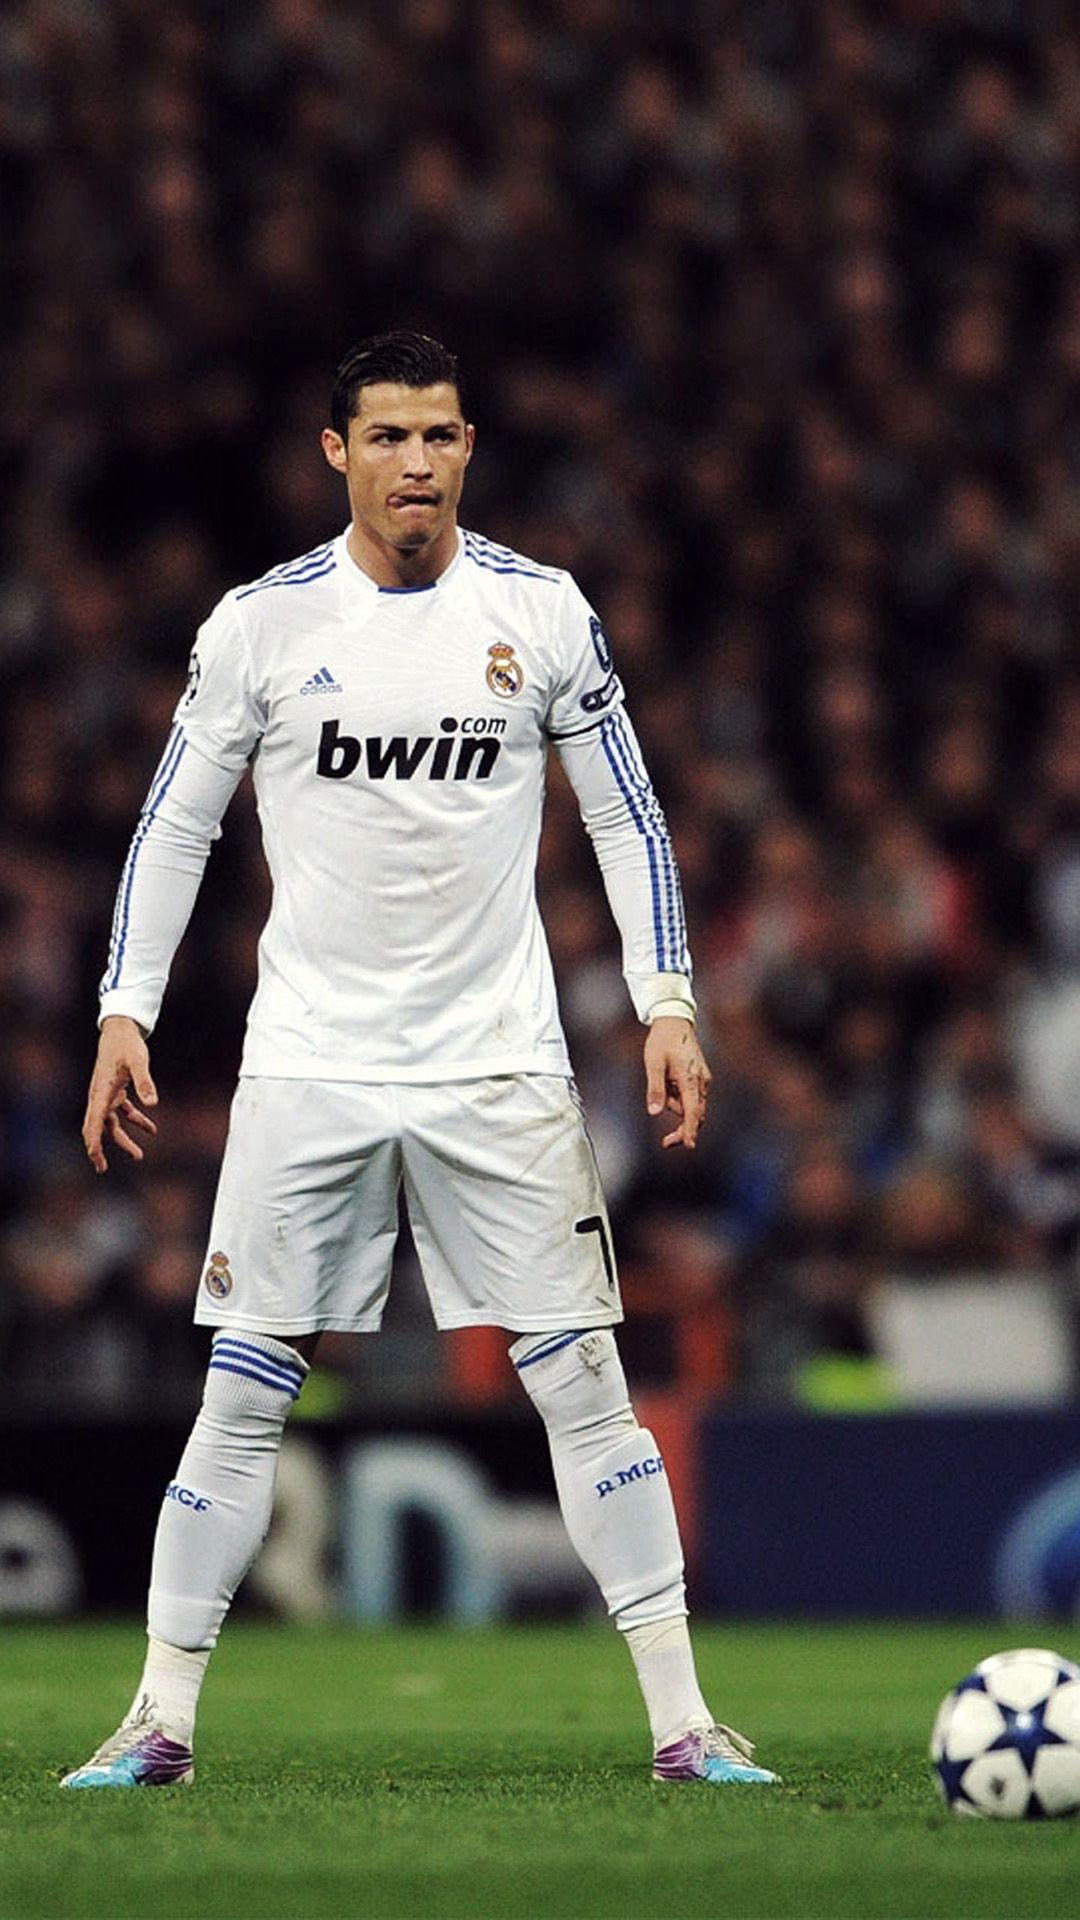 Ronaldo Hd Wallpapers For Mobile Wallpaper Cave